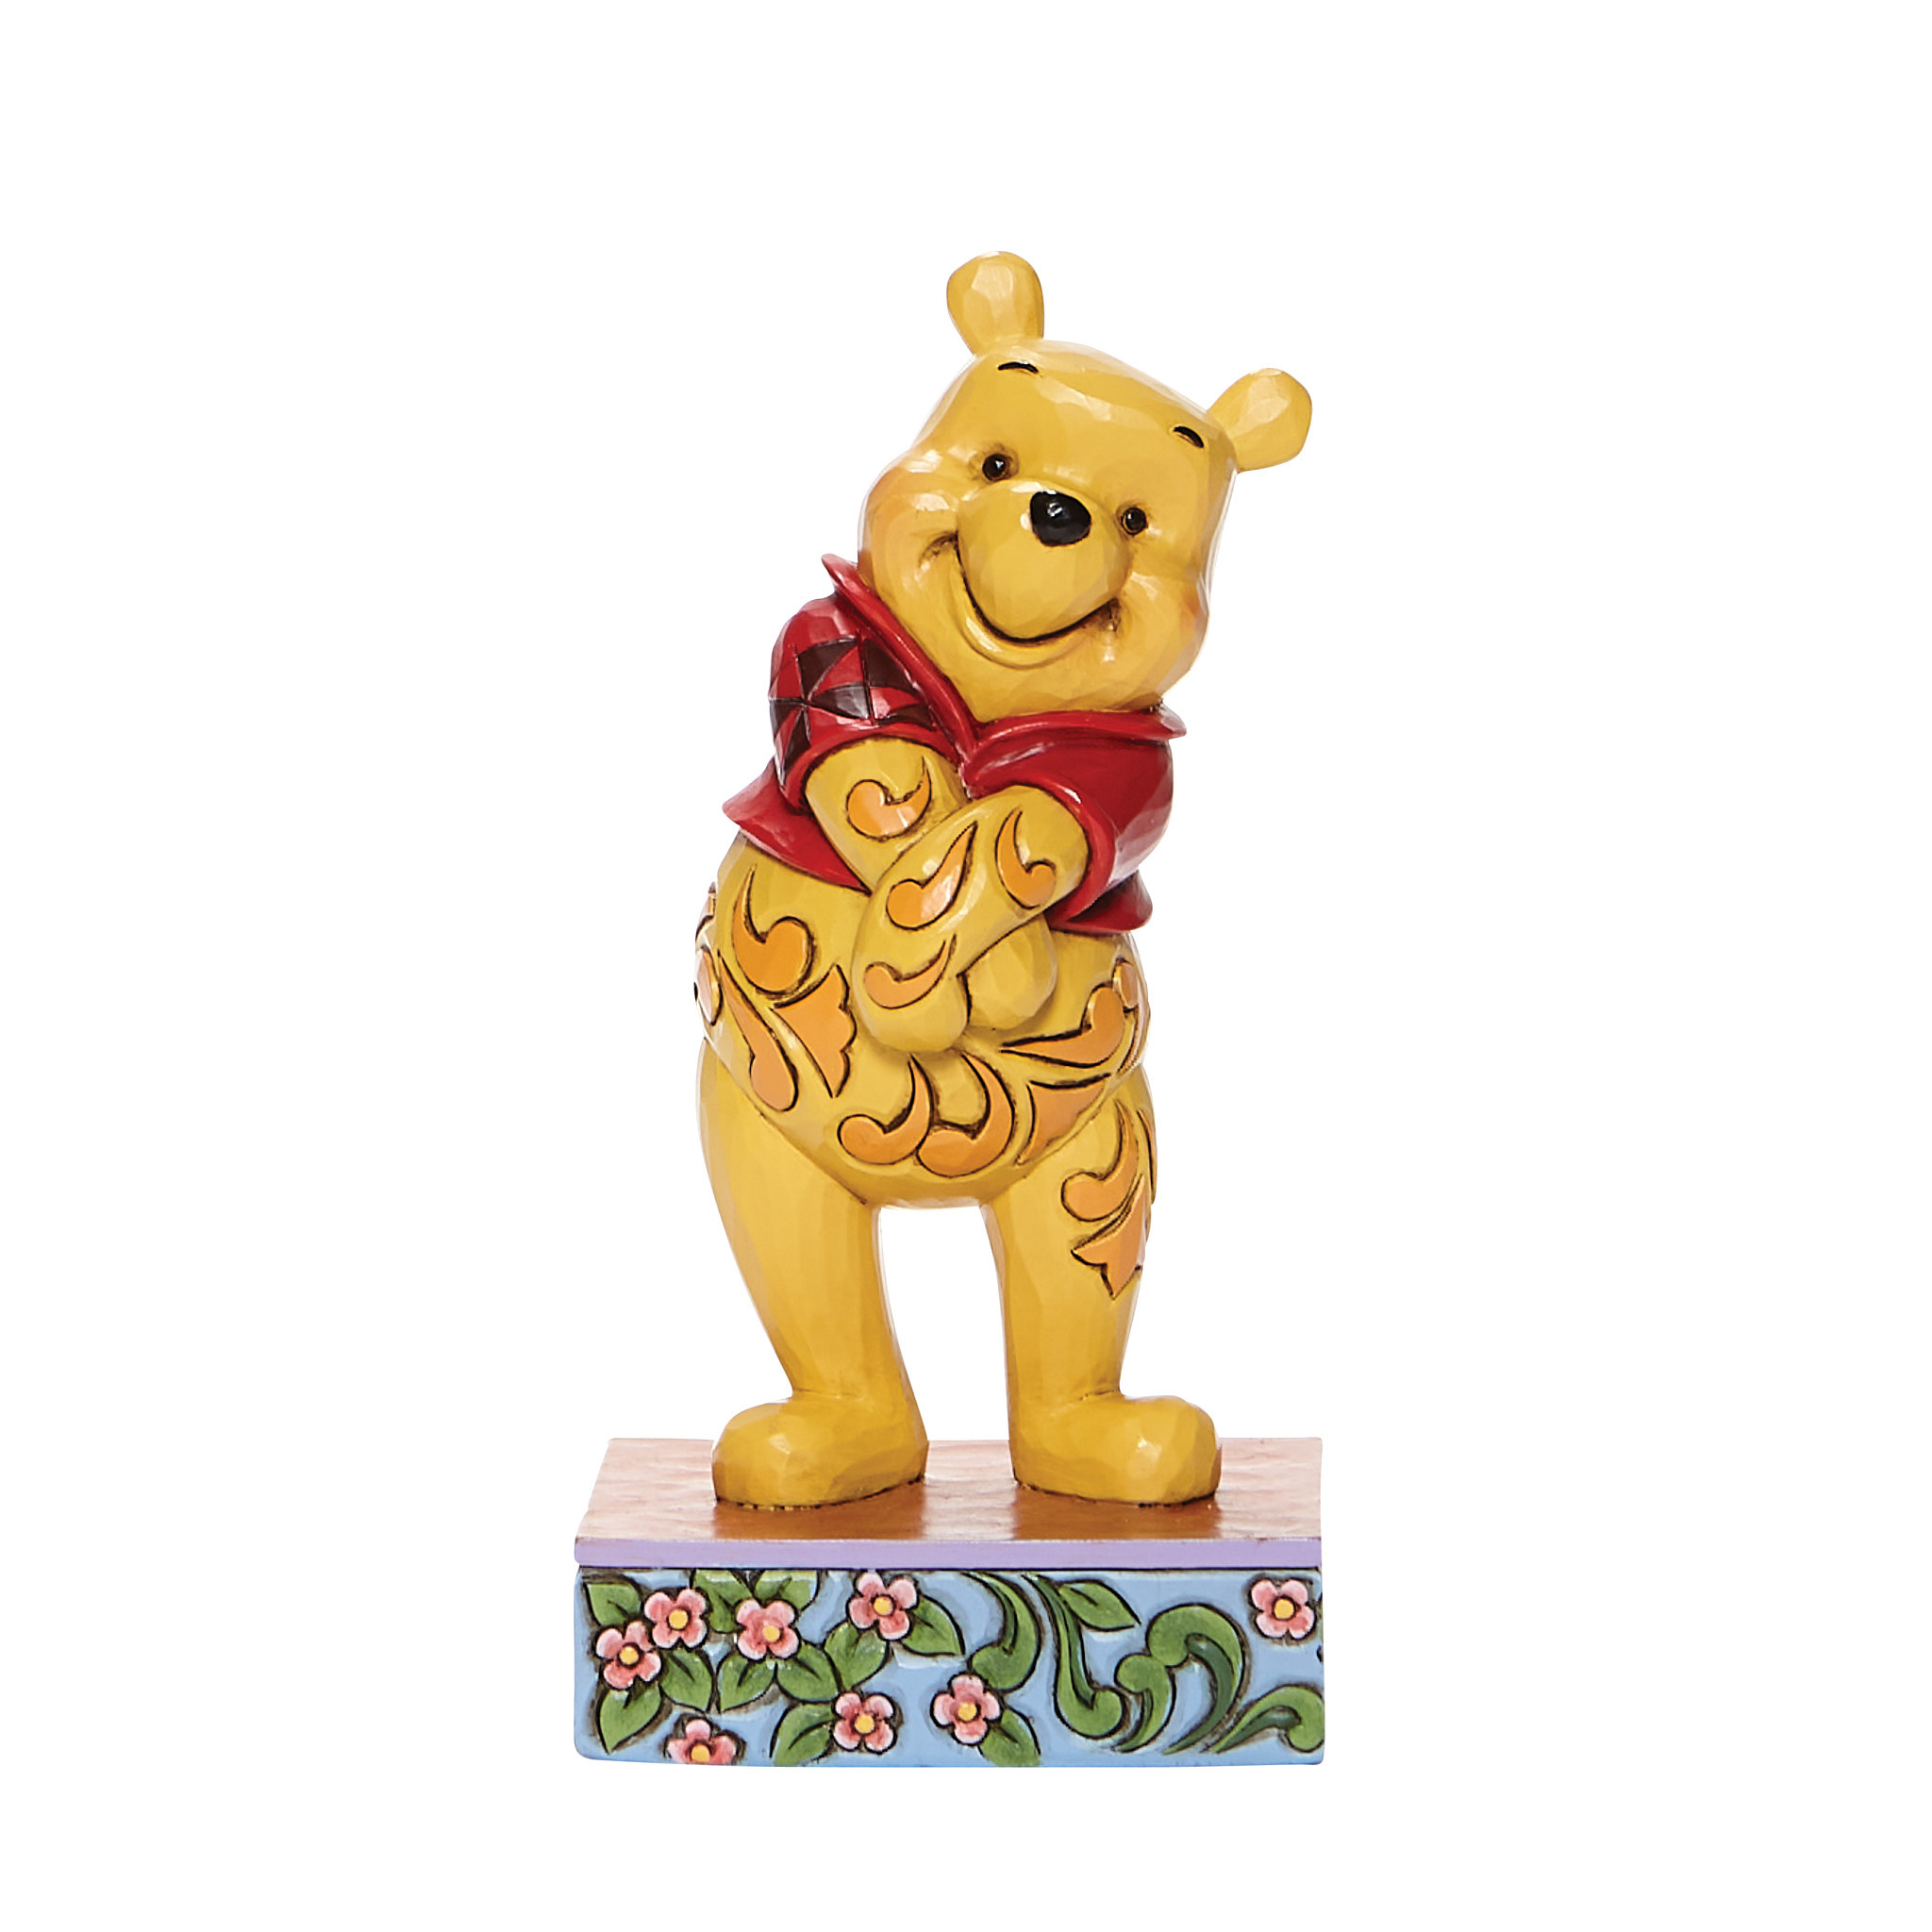 Jim Shore - Personality Poses 'Beloved Bear (Winnie the Pooh Figur) 12cm' 2021